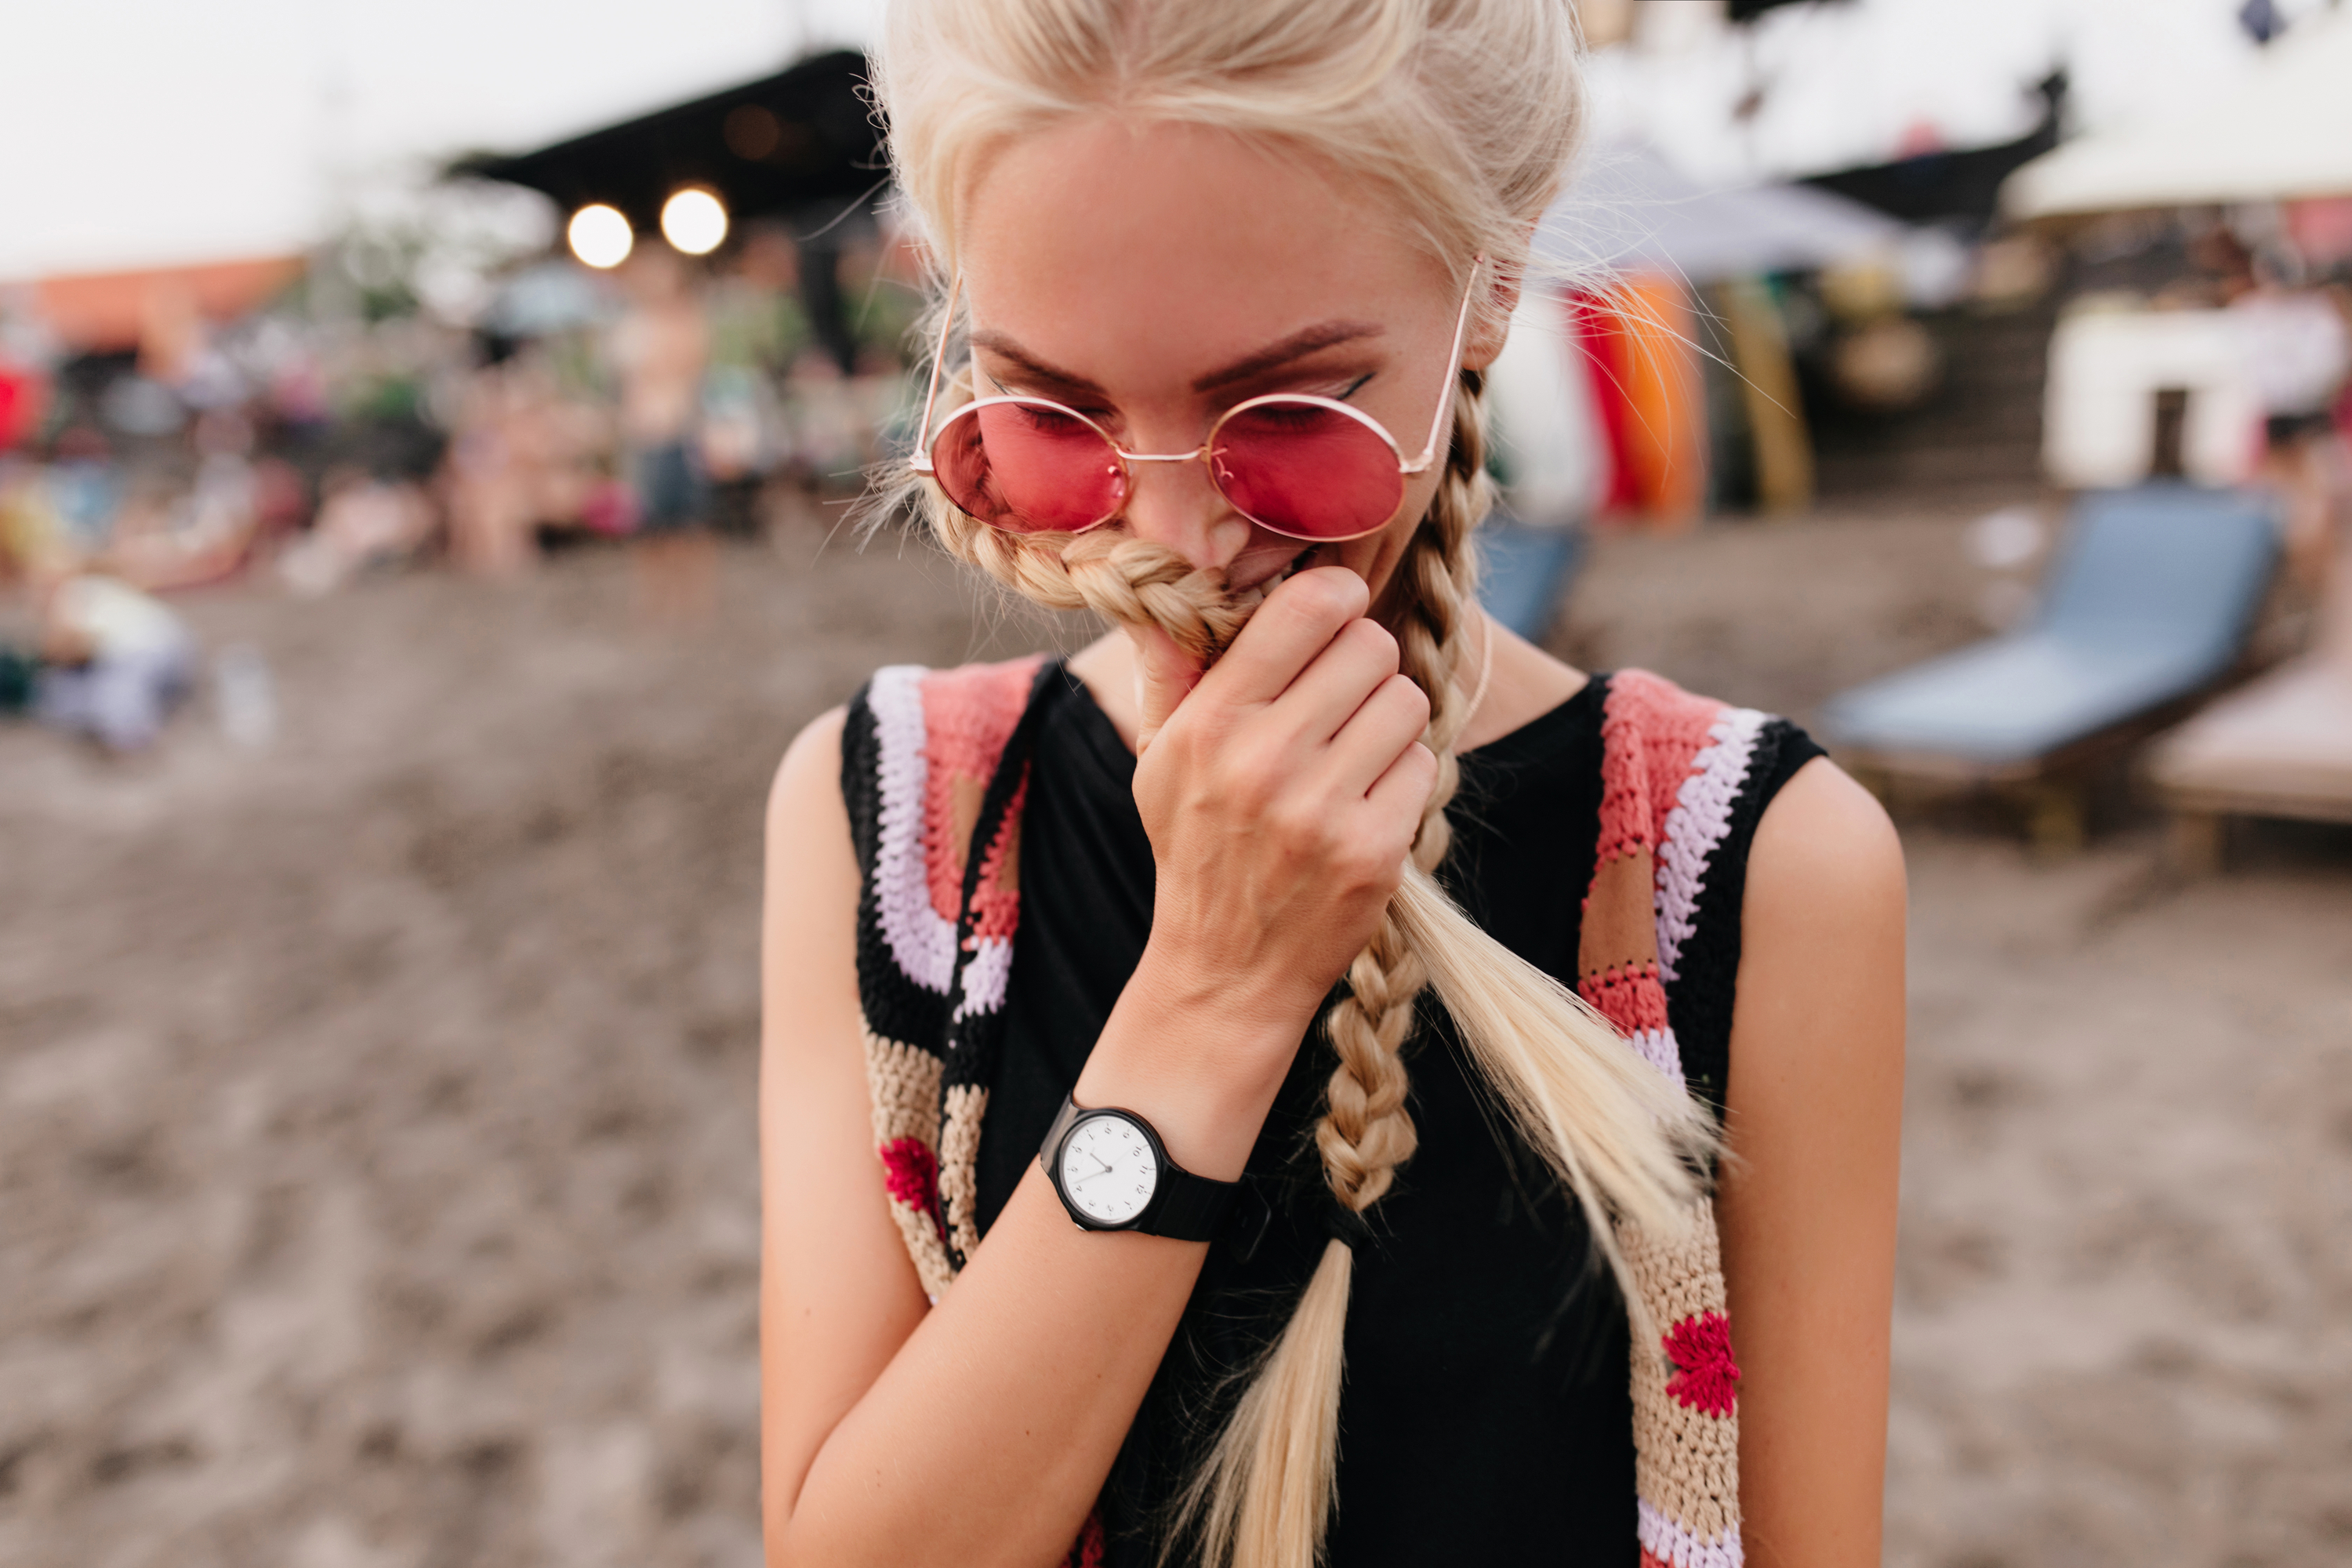 There is nothing worse than dealing with your hair while you're traveling. These travel hairstyles will help keep your hair under control. You can't ever go wrong with braids. They're trendy and practical.